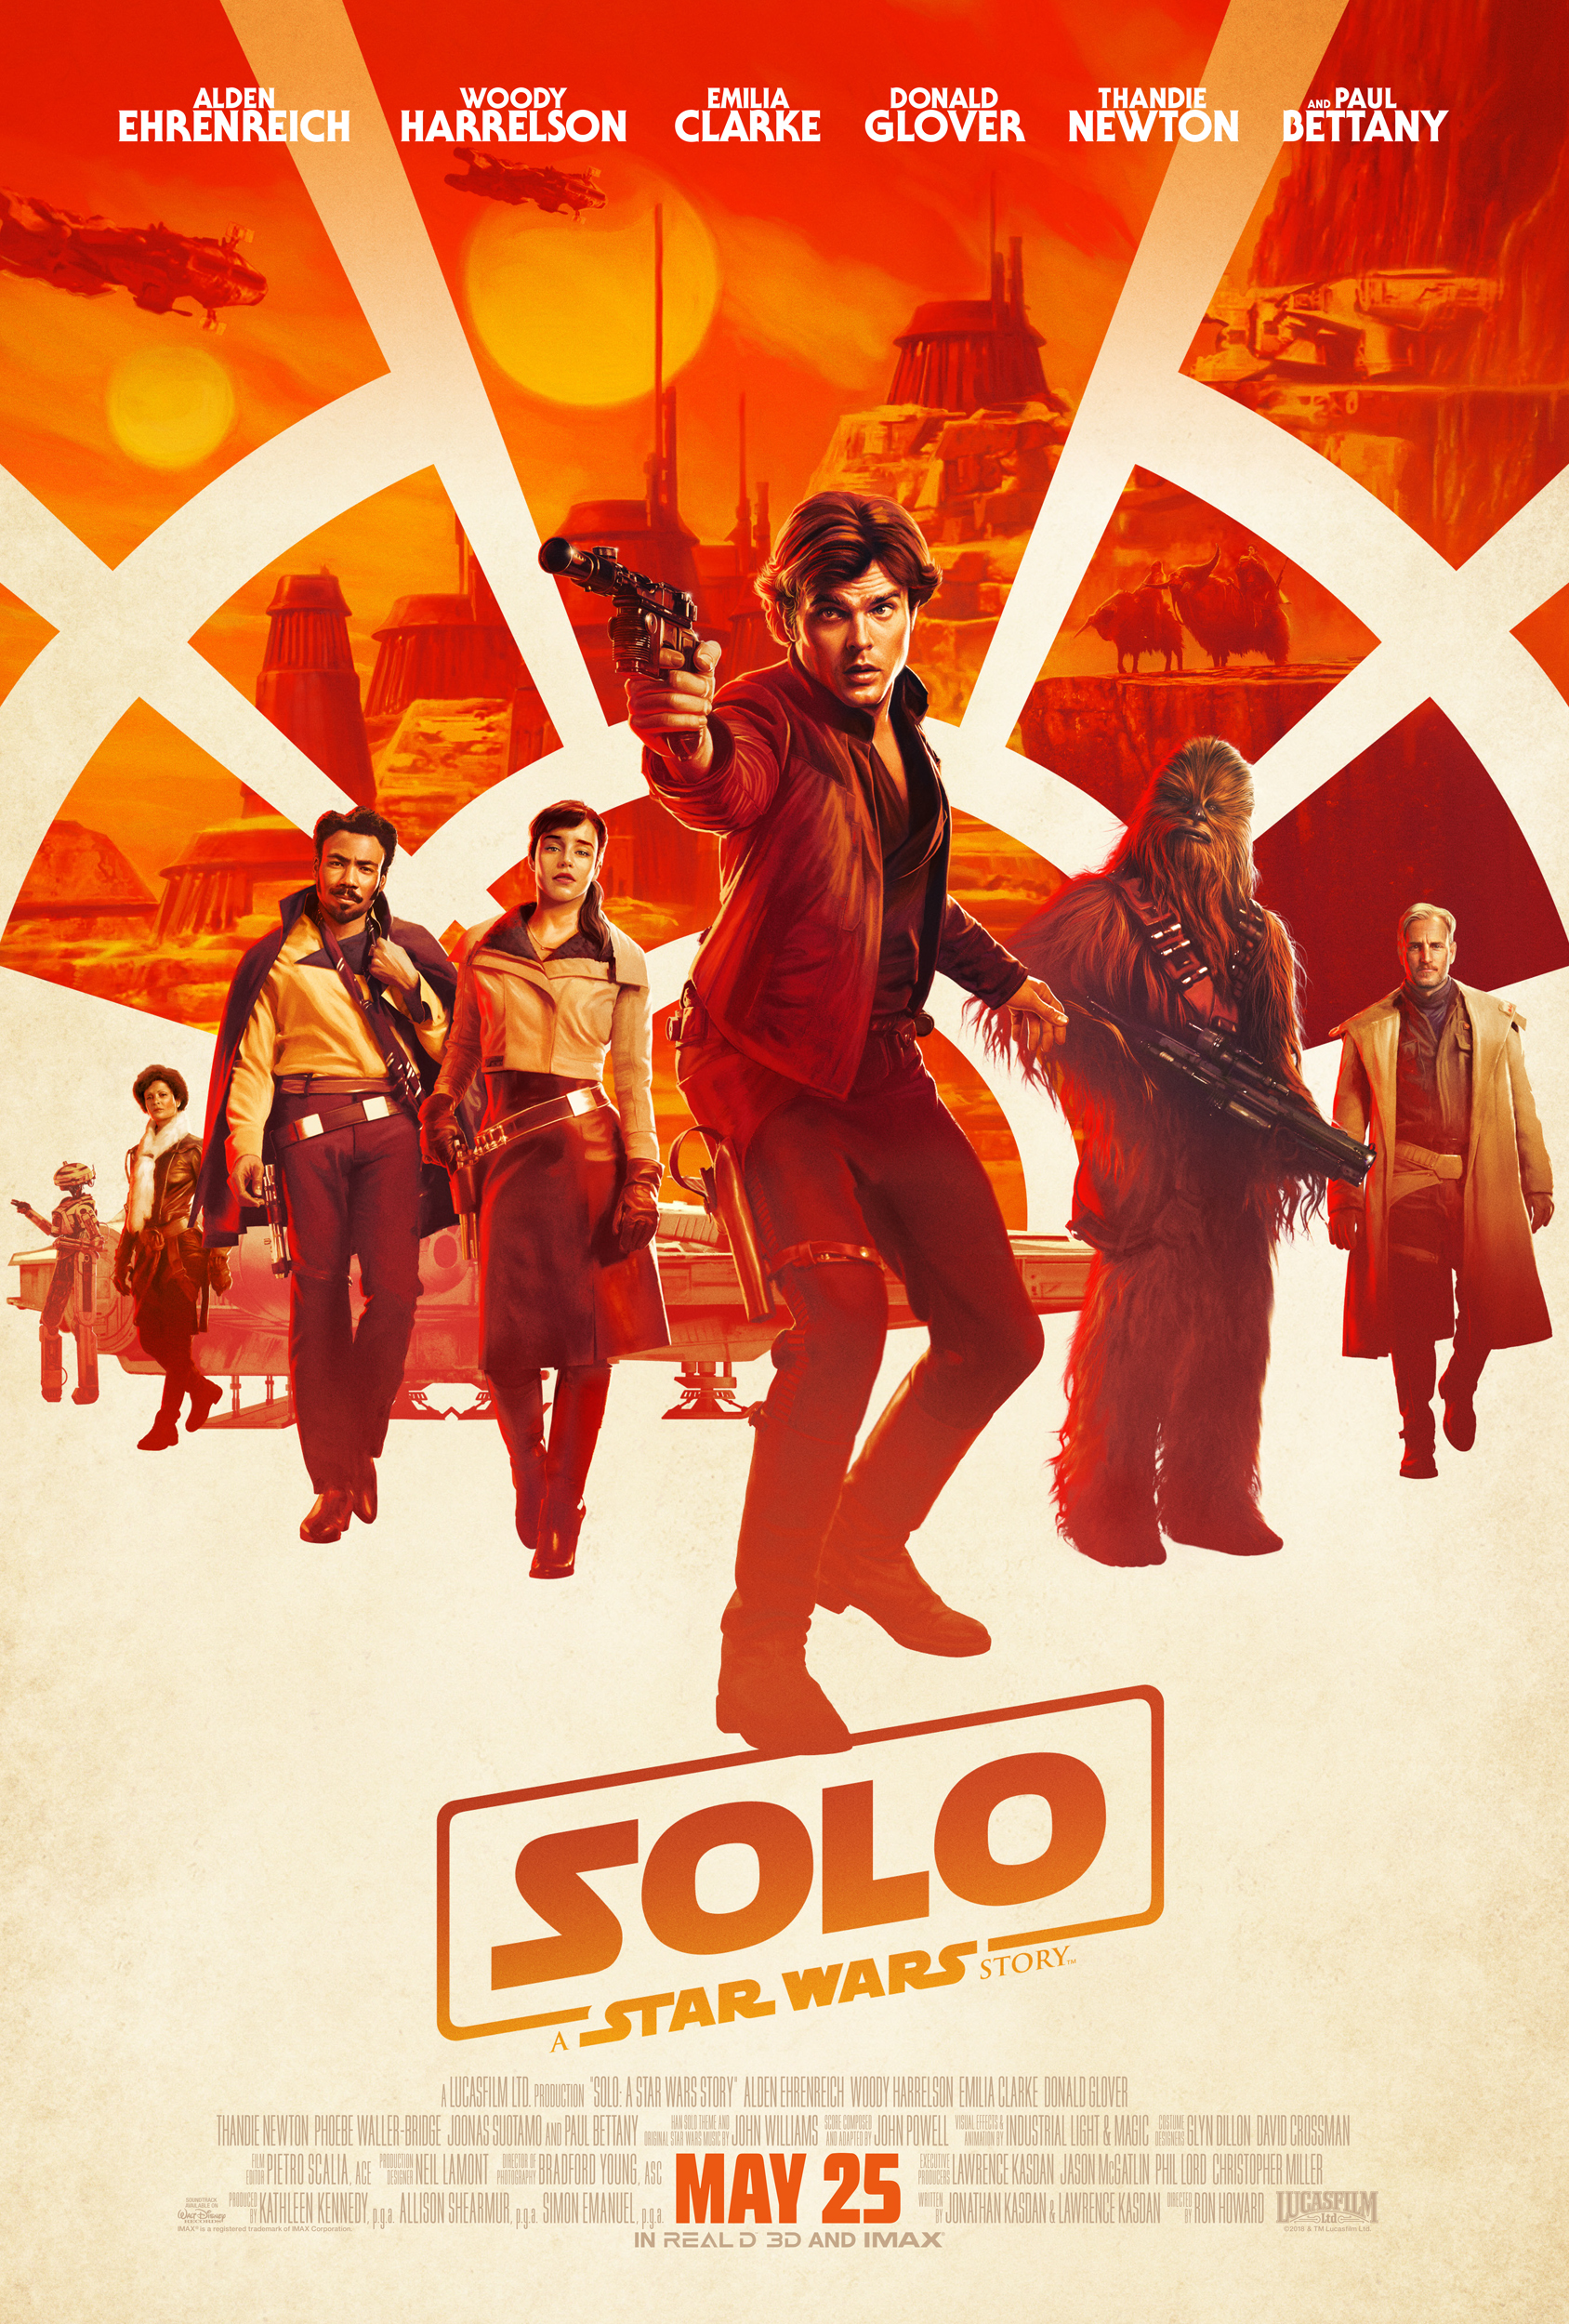 Solo: A Star Wars Story movie poster orange and white with all the characters and a millennium falcon window